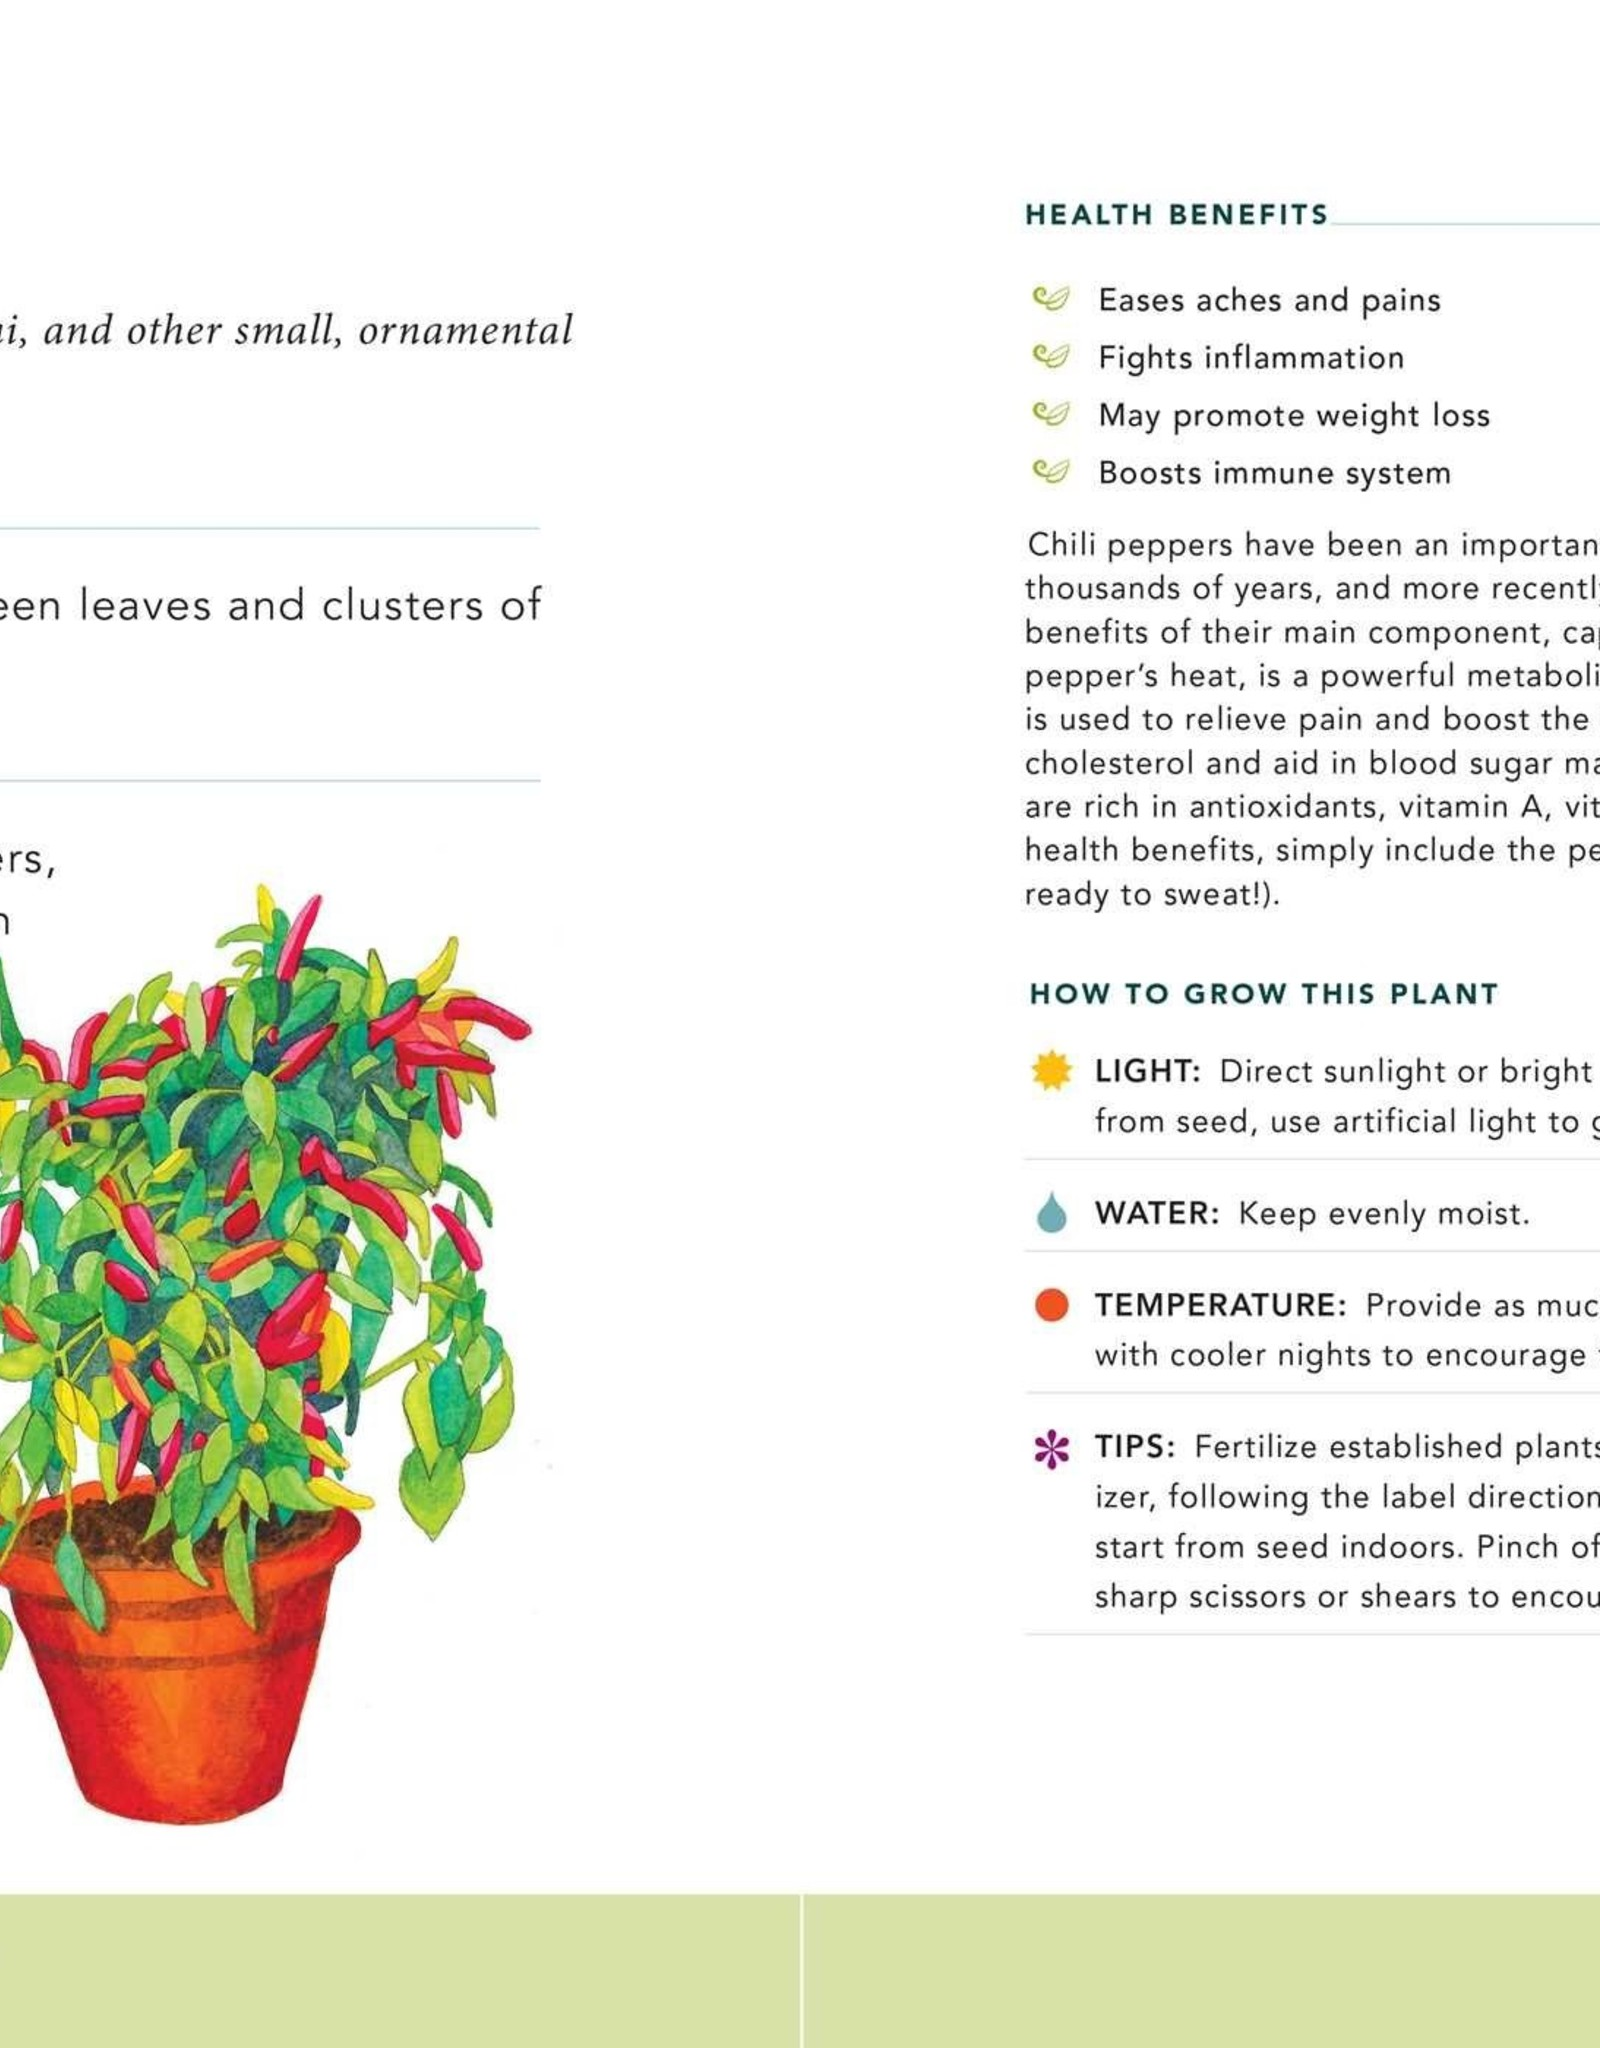 Simon & Schuster Houseplants For A Healthy Home